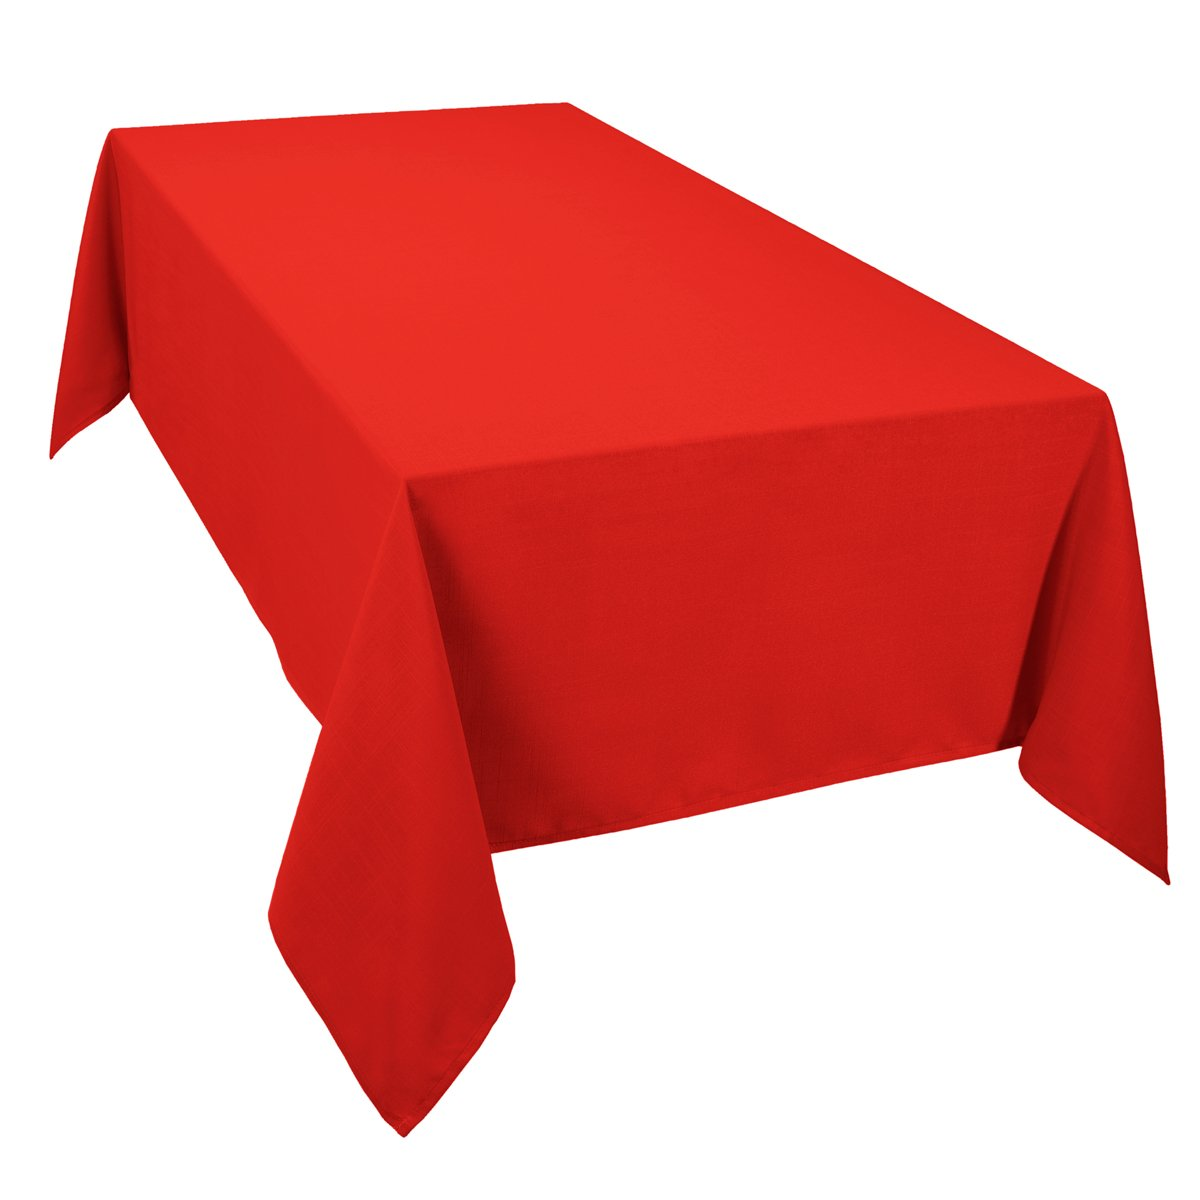 Casual dining essentials 52 x 70 inch oblong tablecloth red for Tablecloth 52 x 120